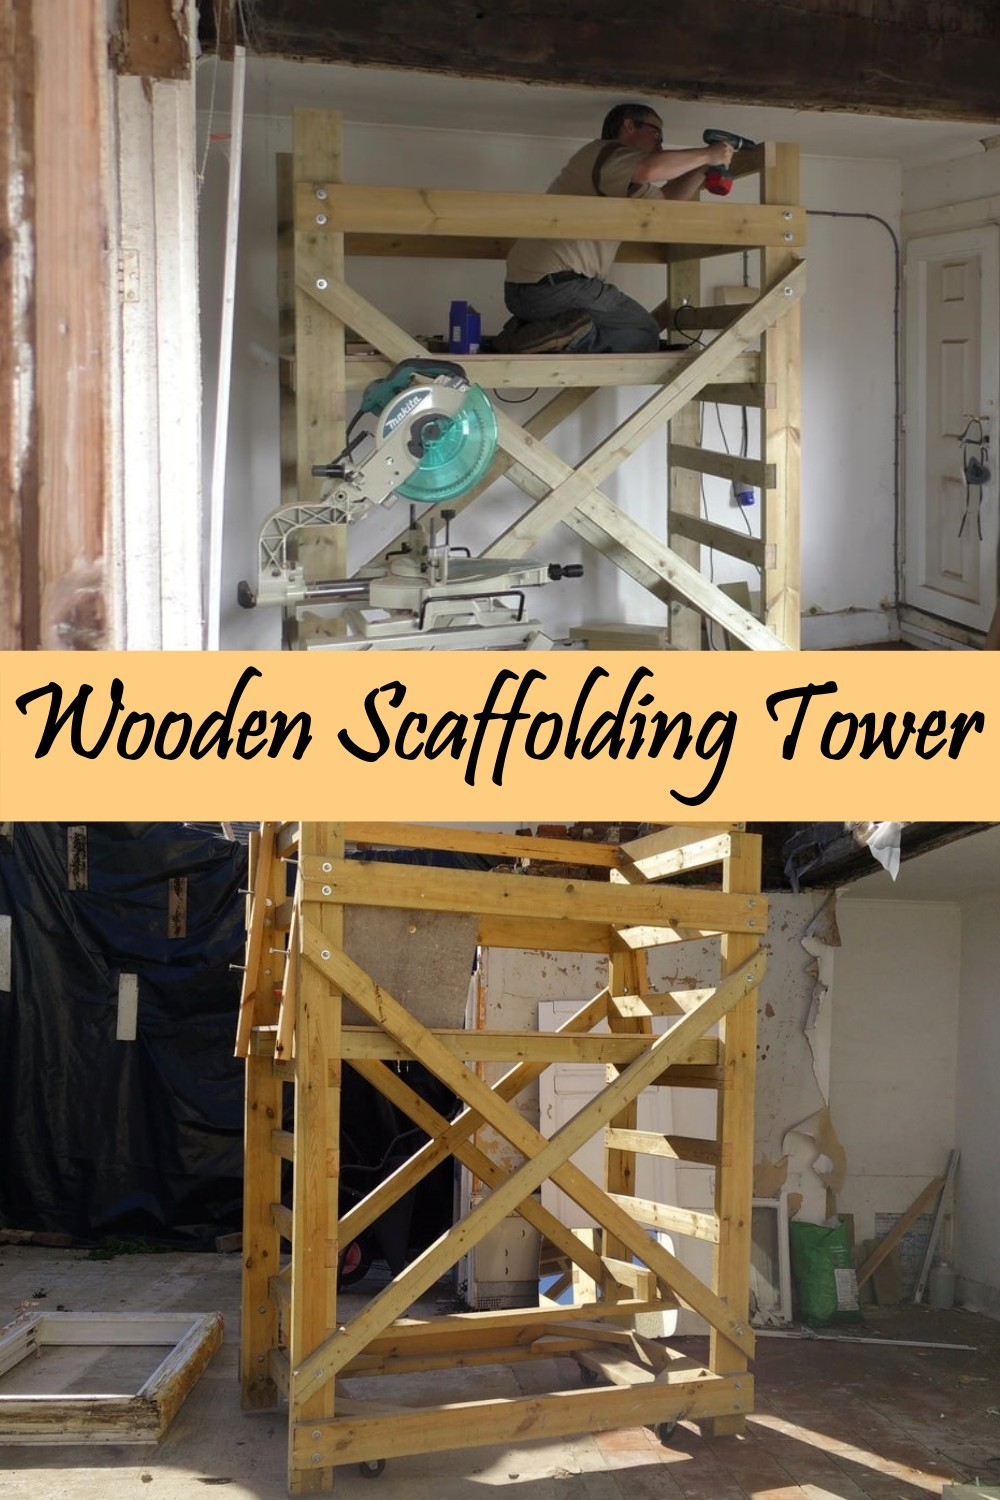 Wooden Scaffolding Tower